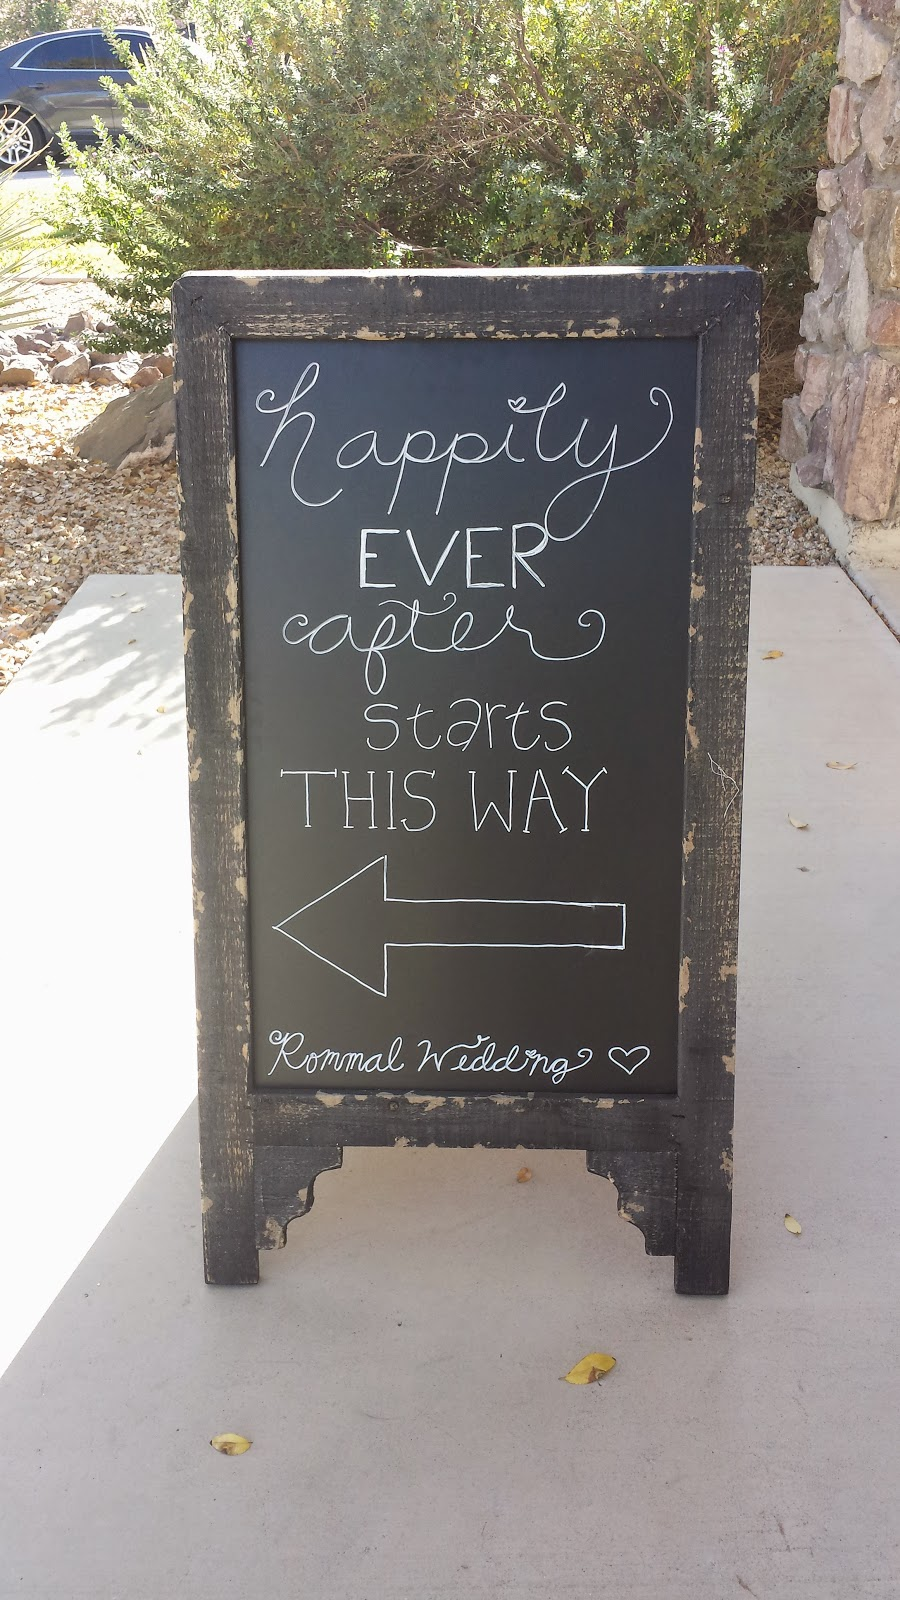 Wedding sign happily ever after starts this way